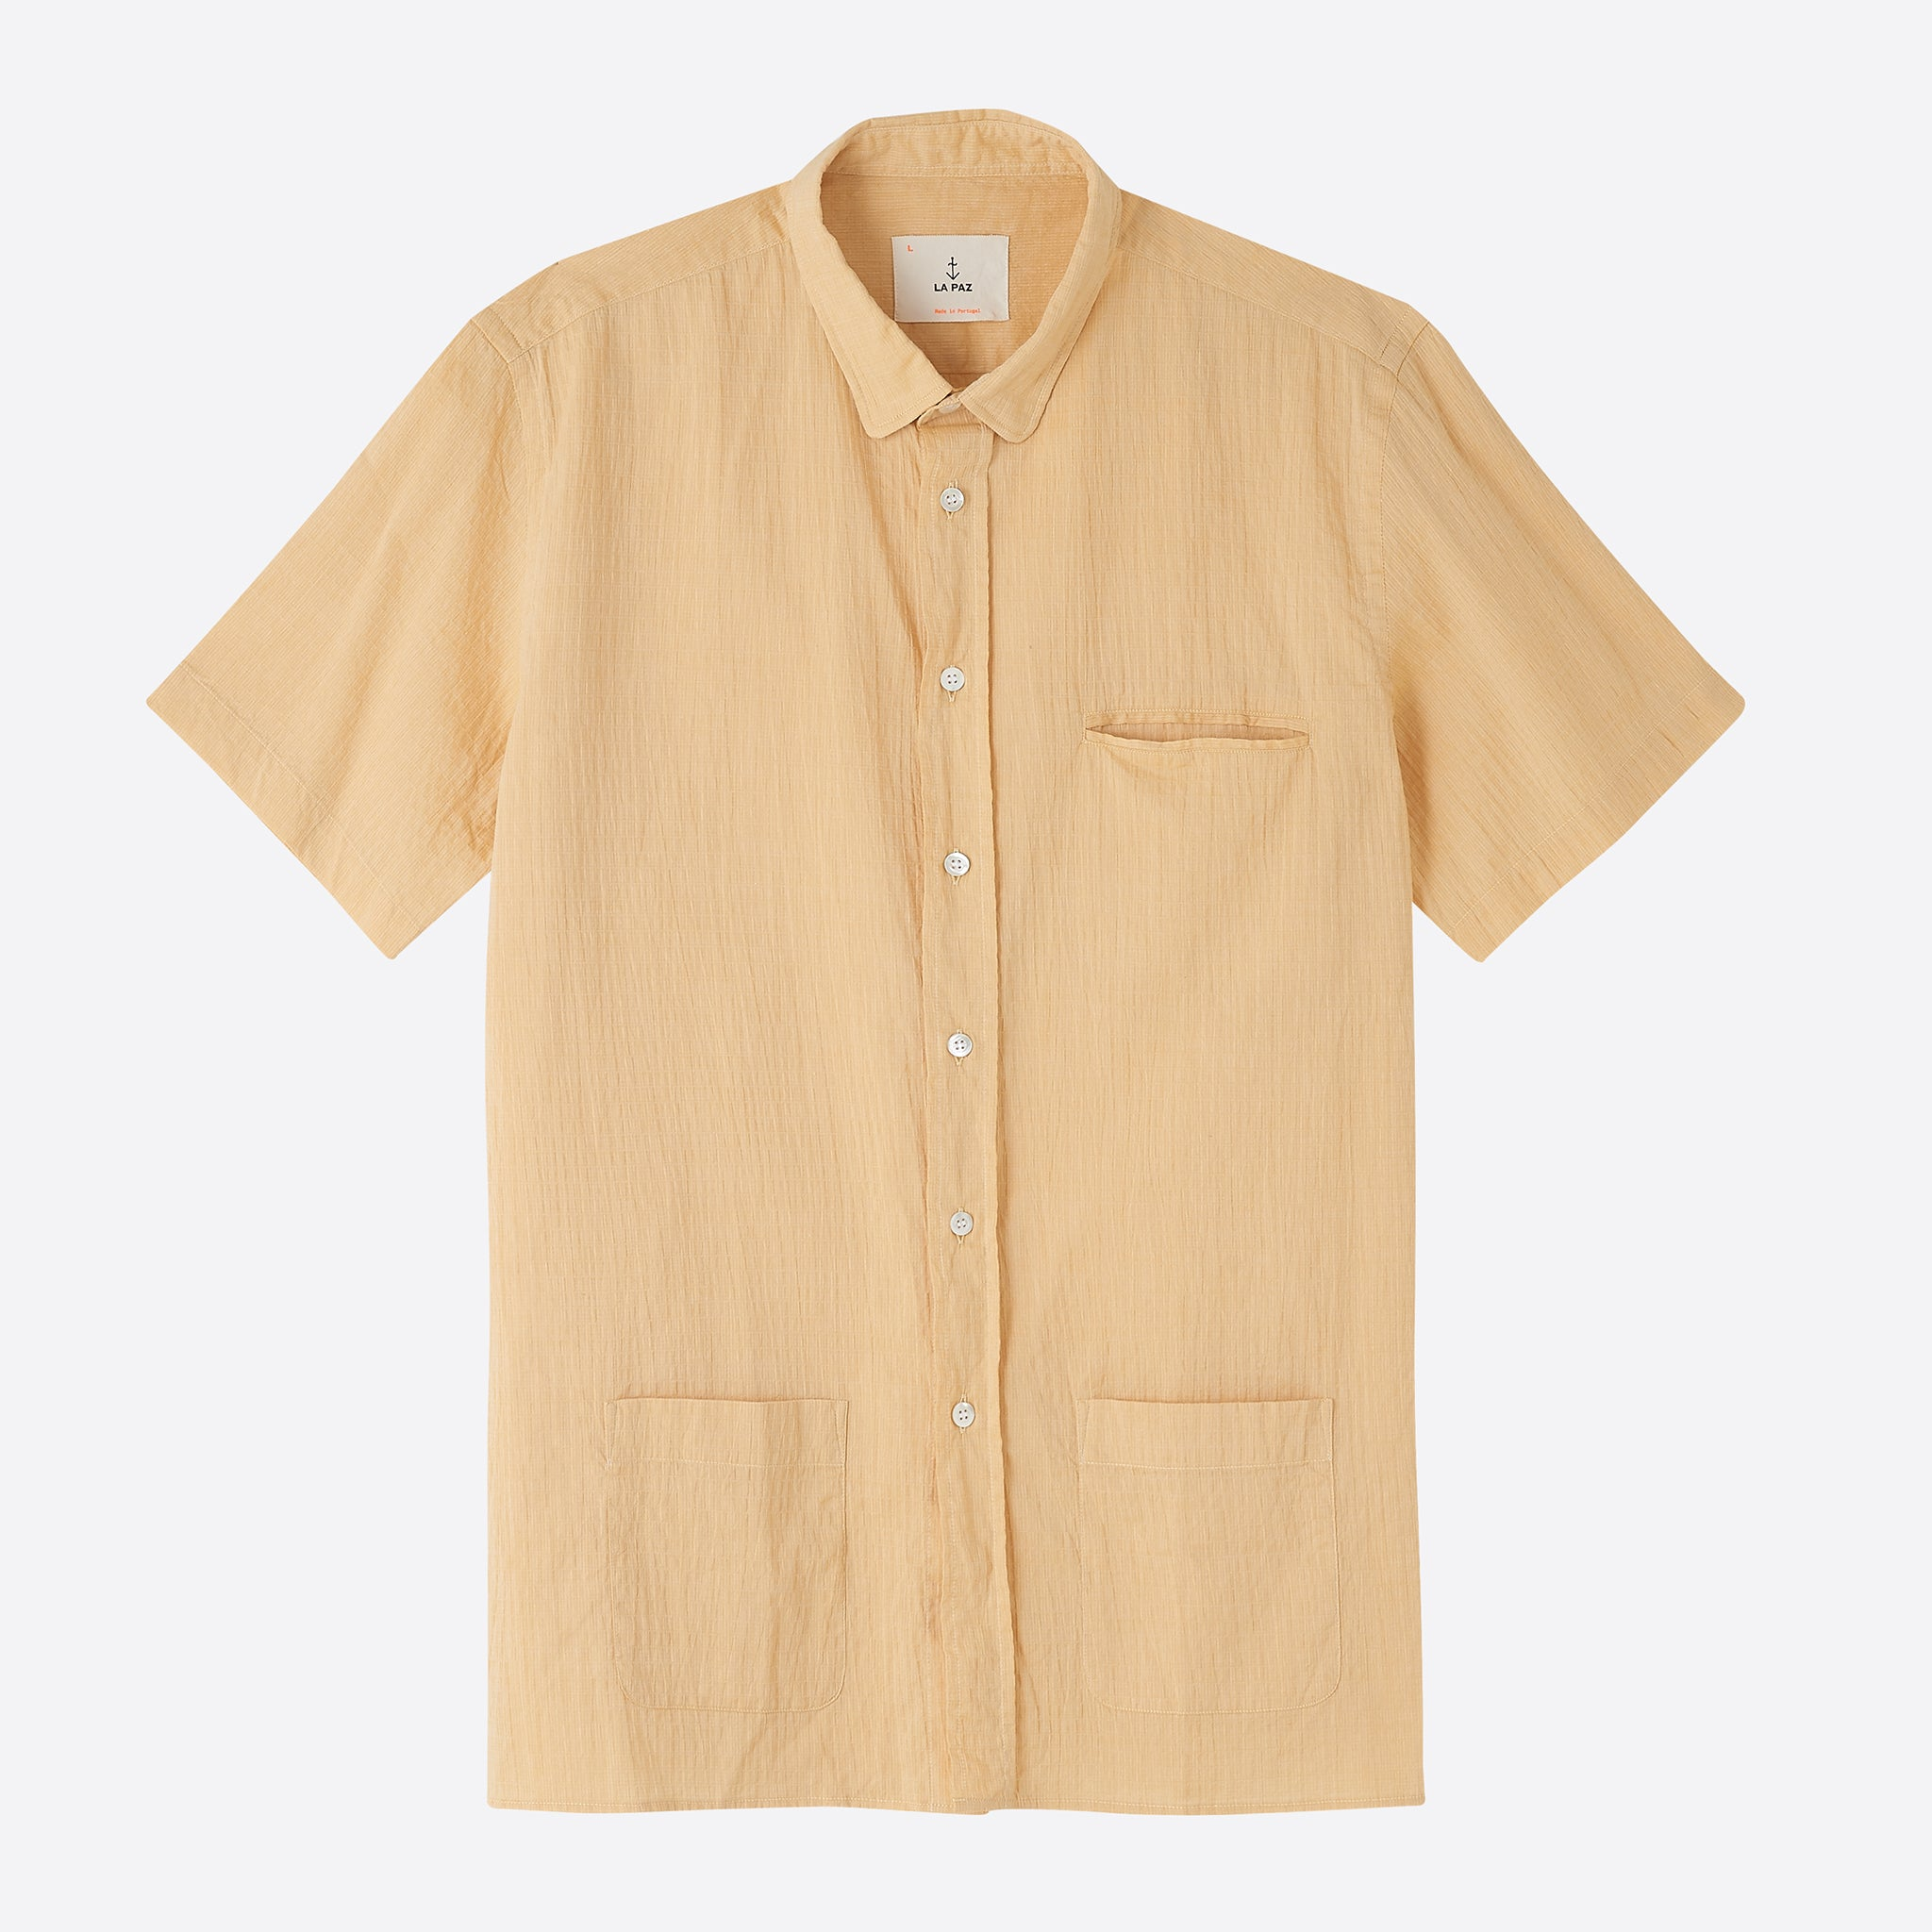 La Paz Castro Shirt in Yellow